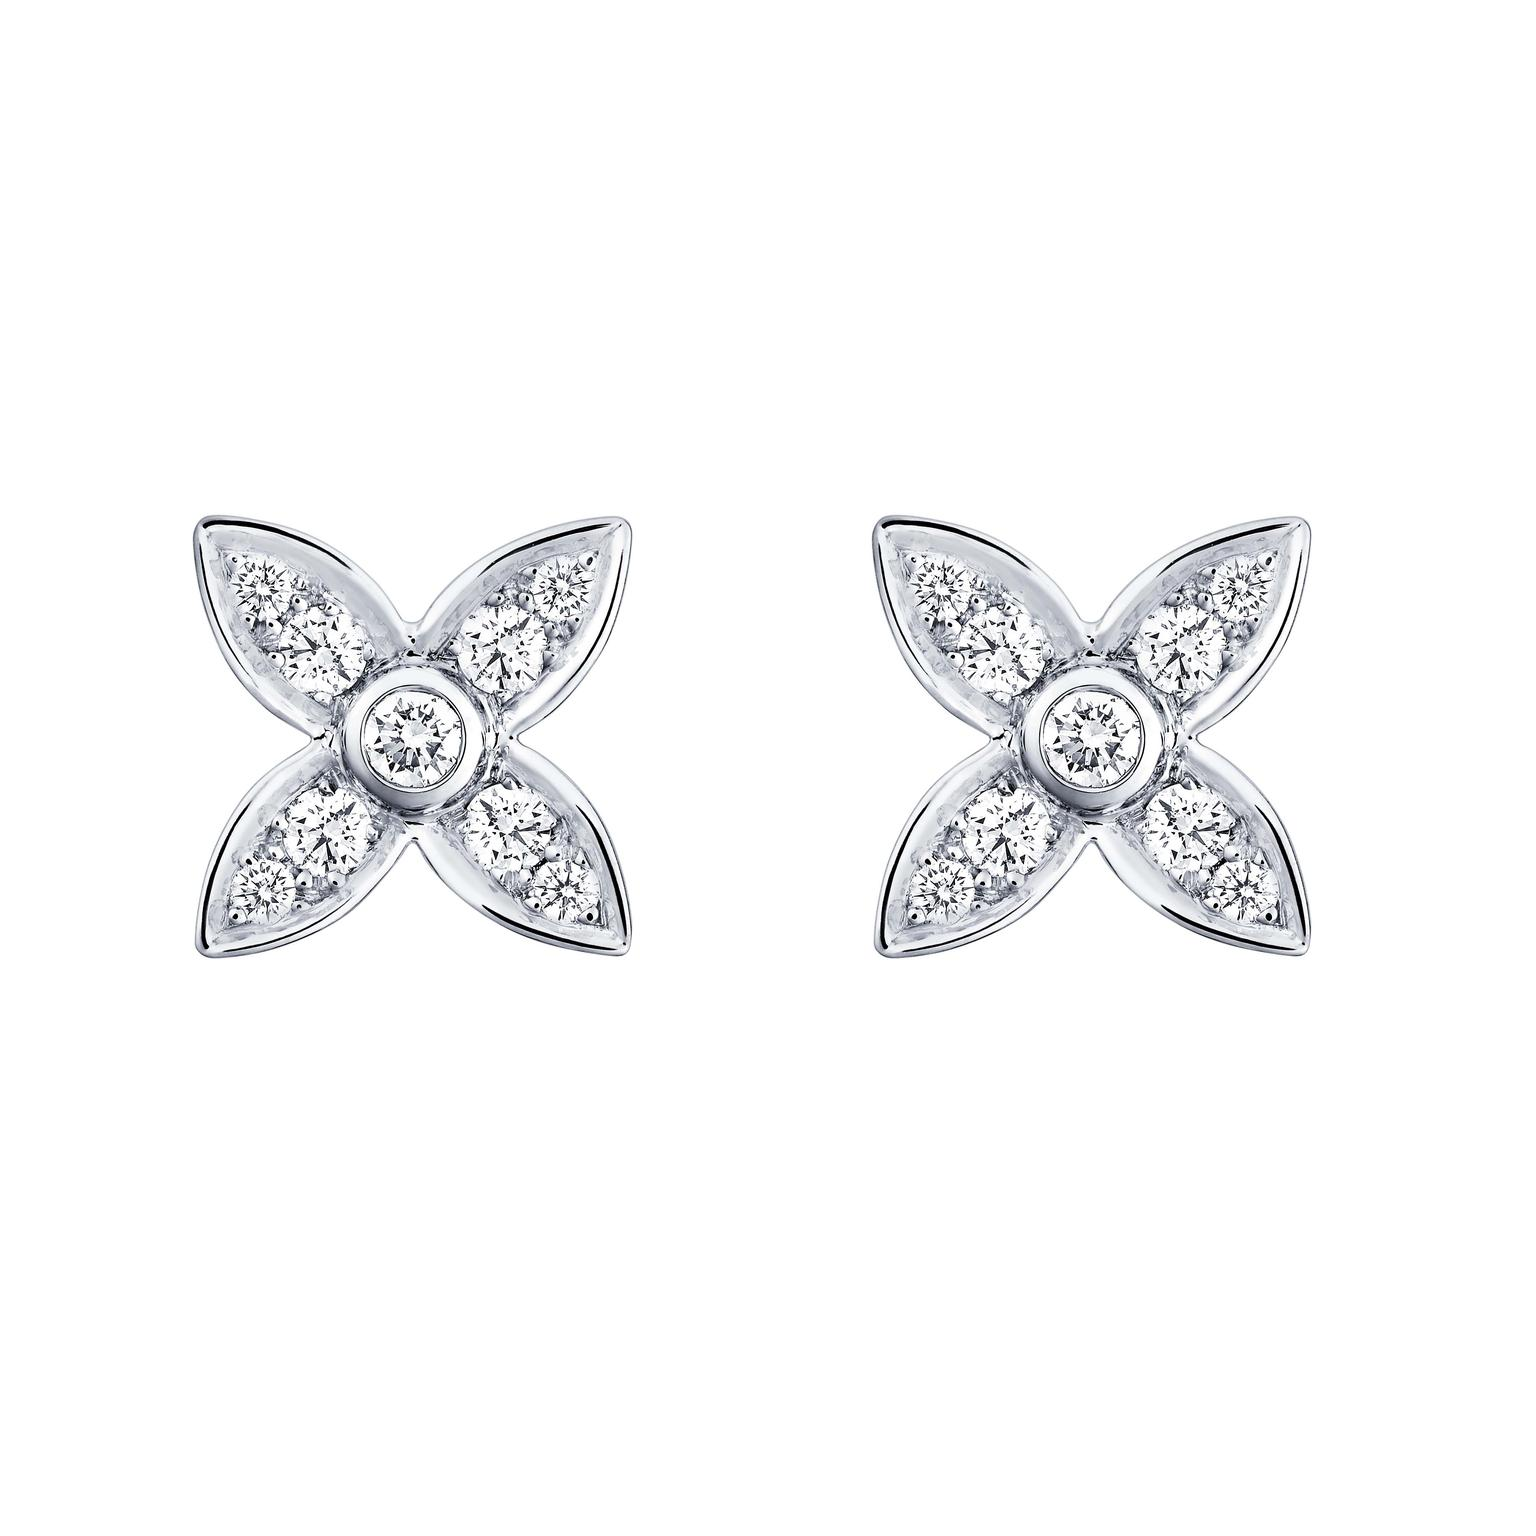 These Louis Vuitton Monogram Star earrings in white gold and diamonds are resolutely contemporary.